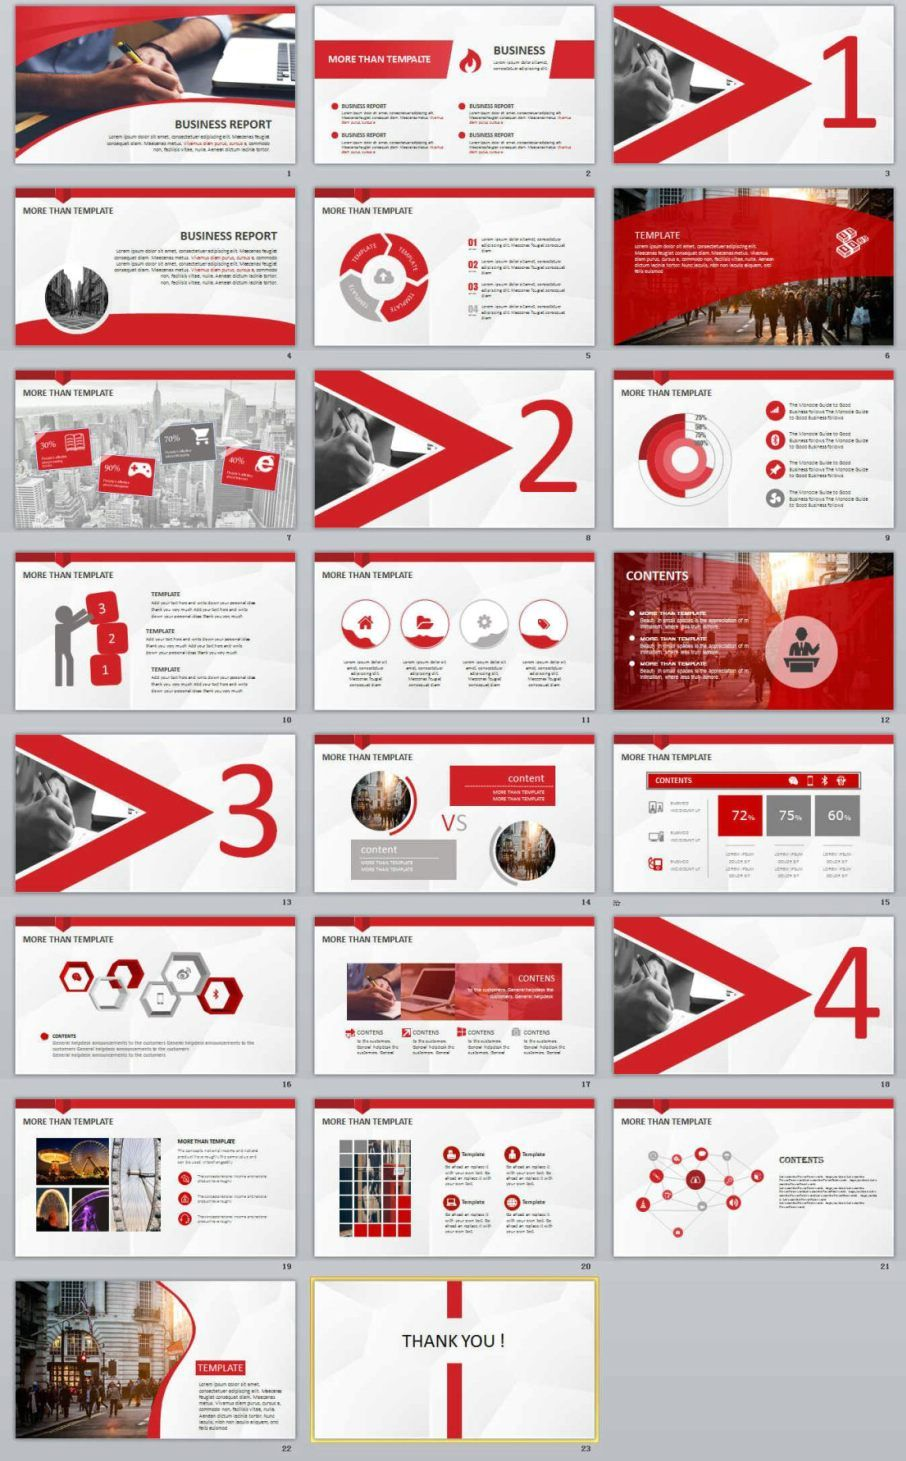 23 red business report powerpoint templates nature powerpoint 23 red business report powerpoint templates the highest quality powerpoint templates and keynote templates wajeb Gallery